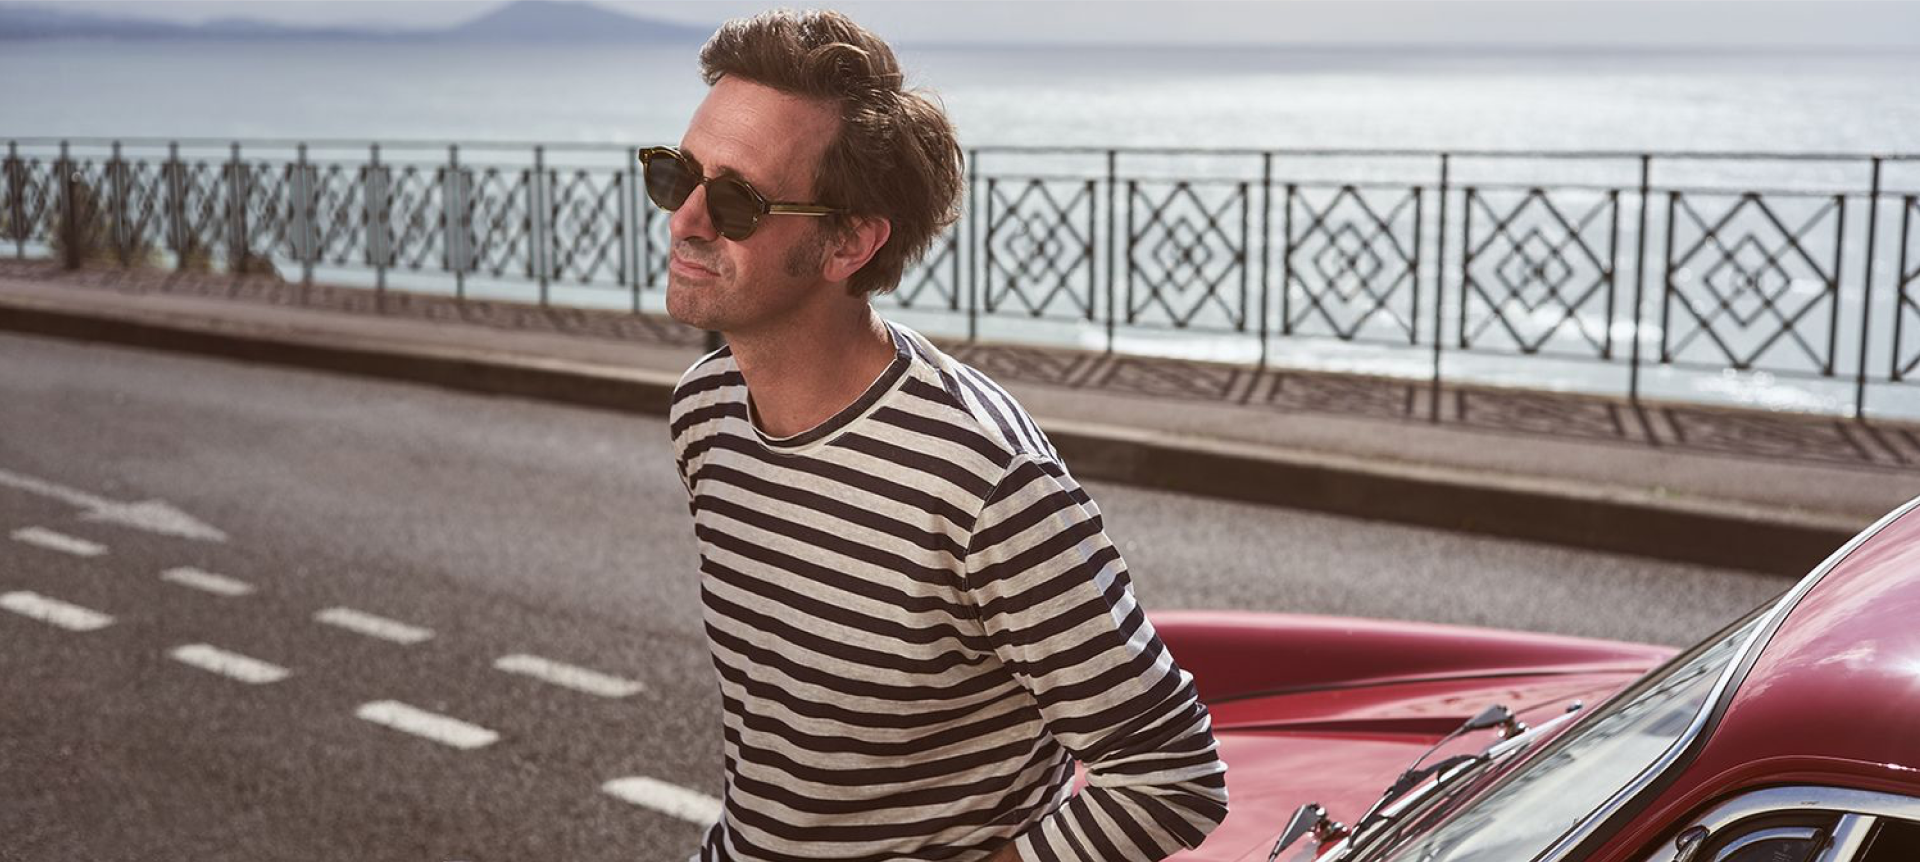 Five Tips For Dressing Sunglasses Down This Summer